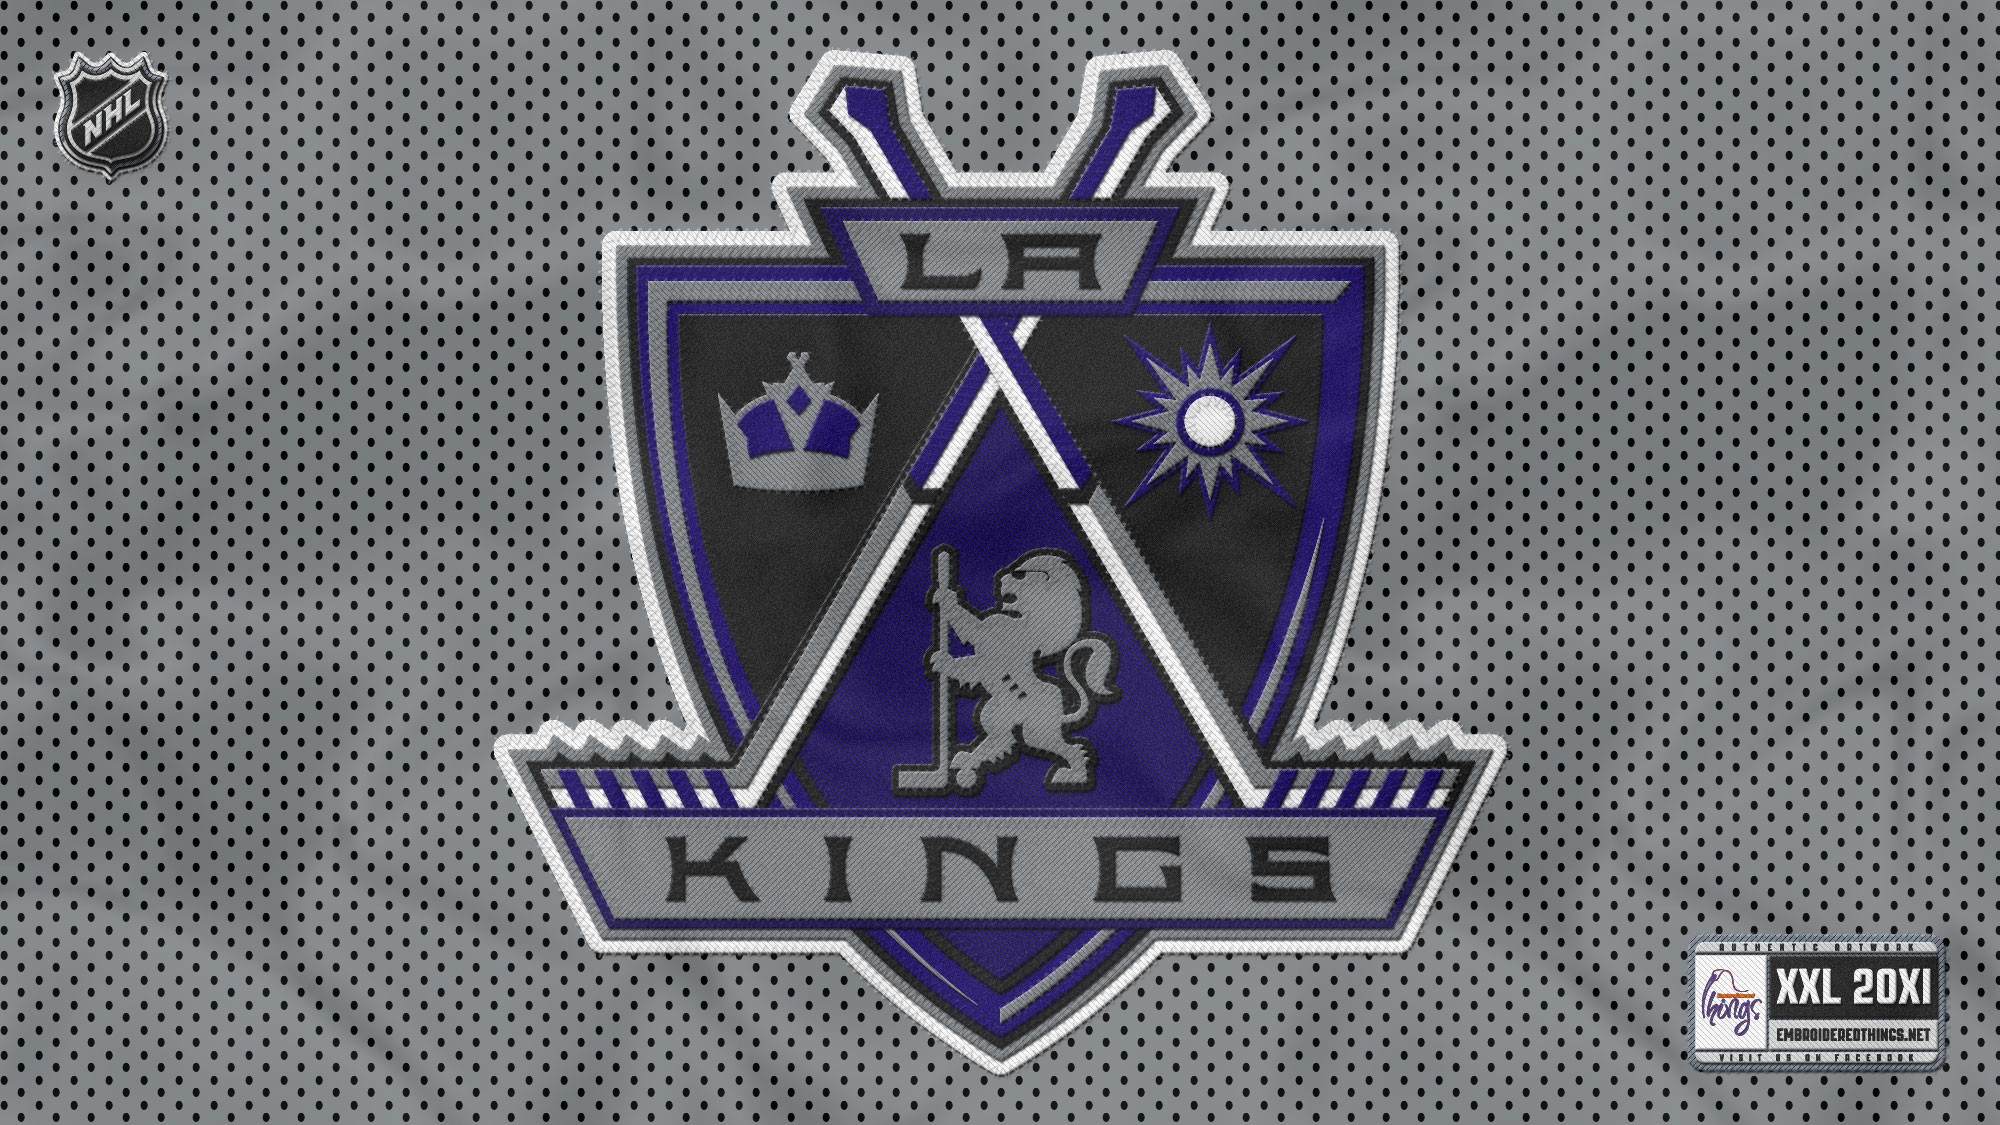 2000x1125 by Janella Connar Wallpaper for PC: LA Kings